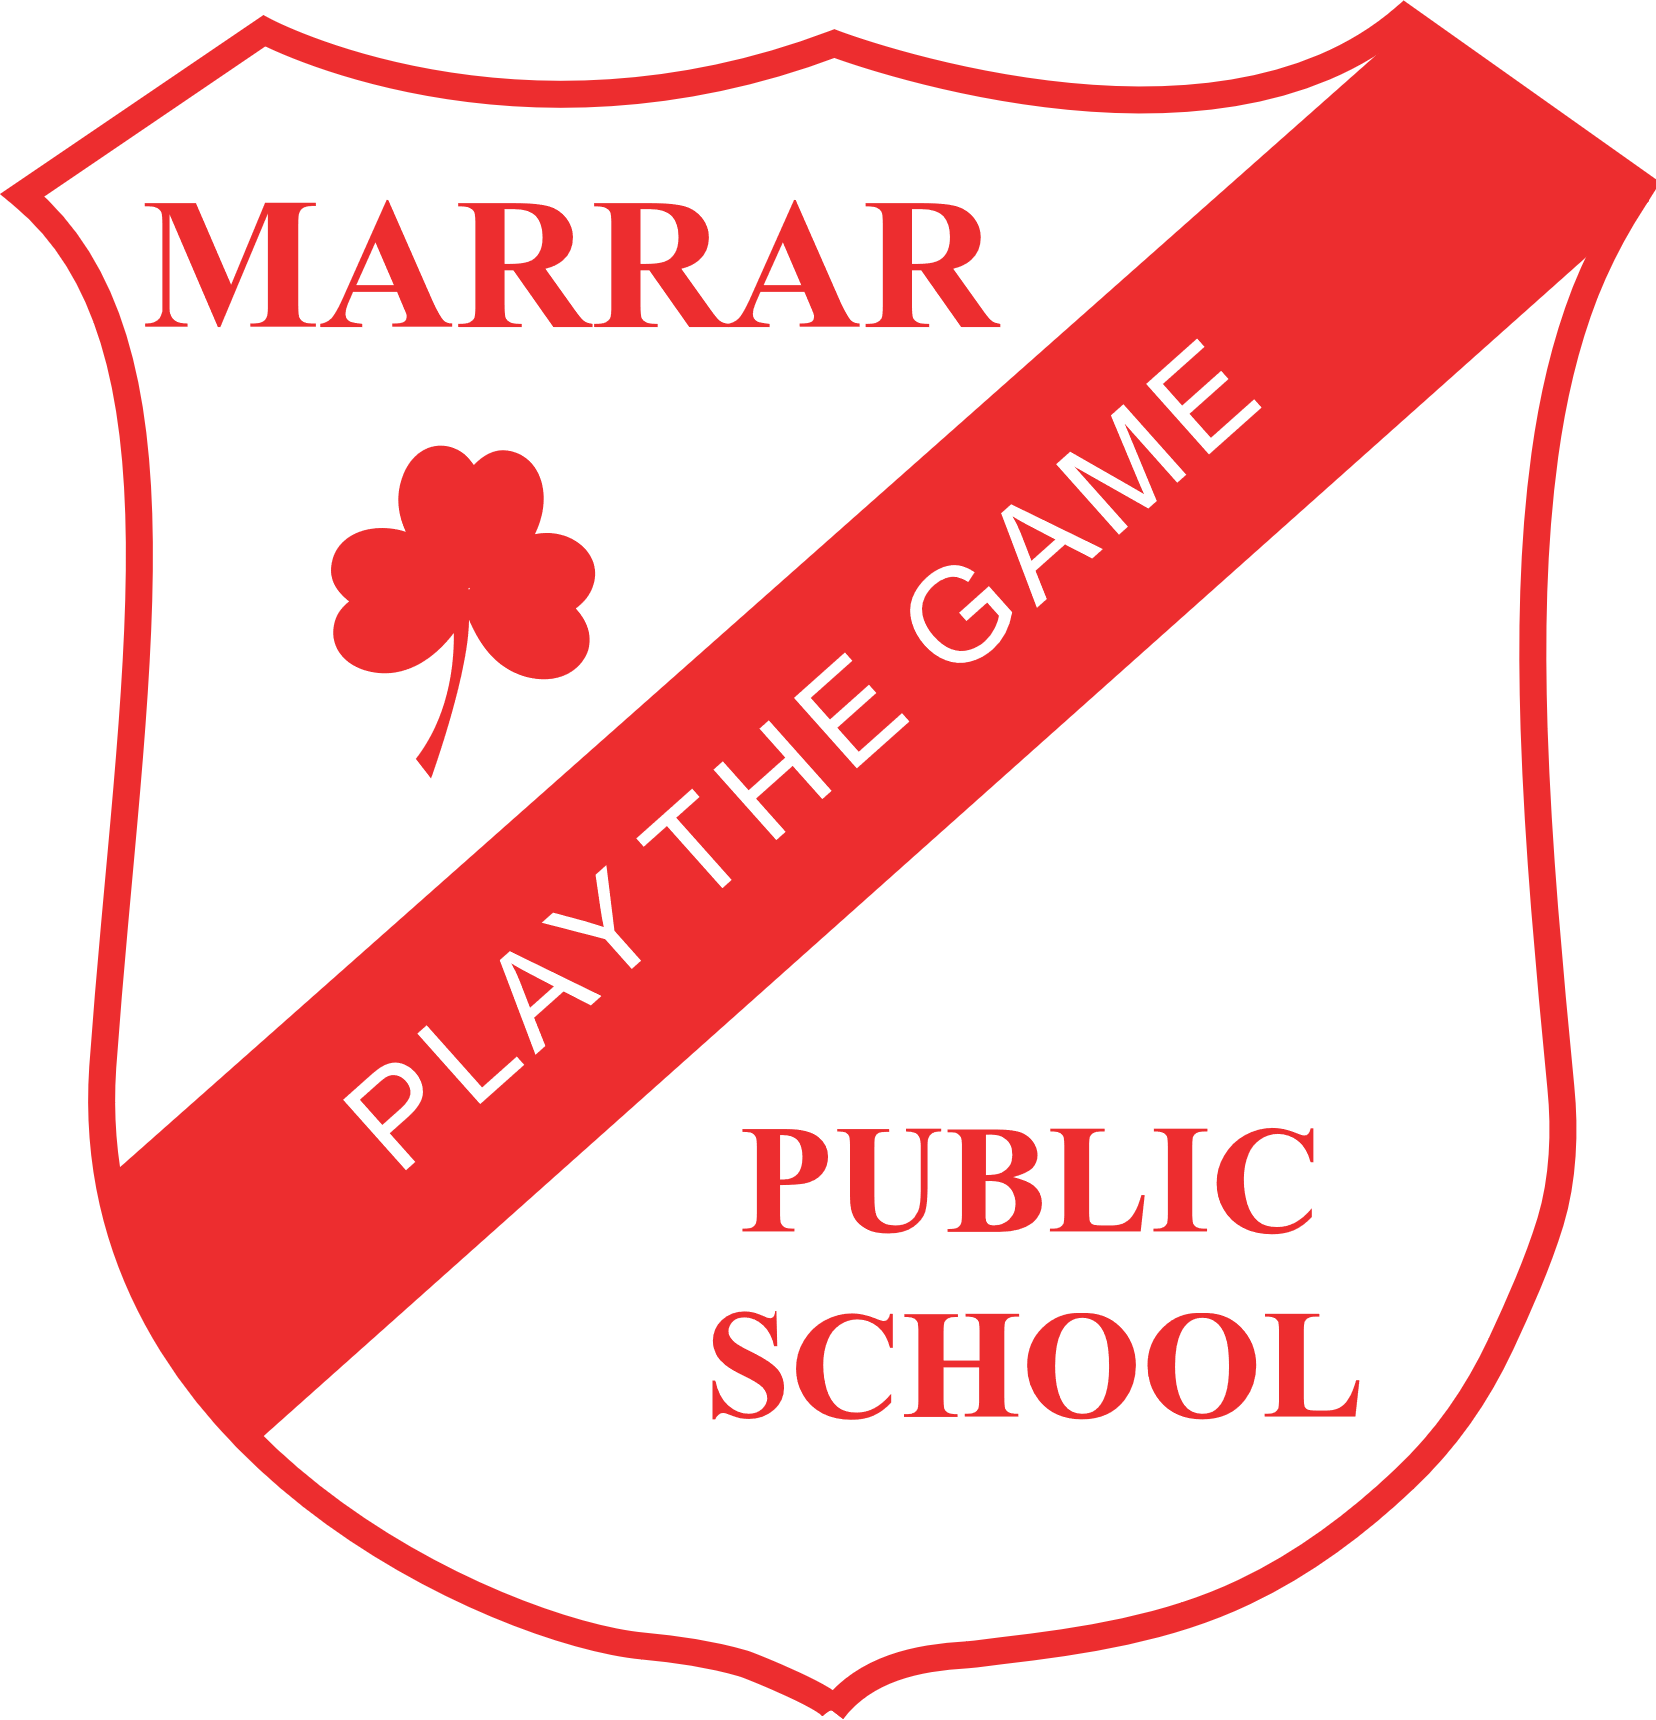 Marrar Public School logo